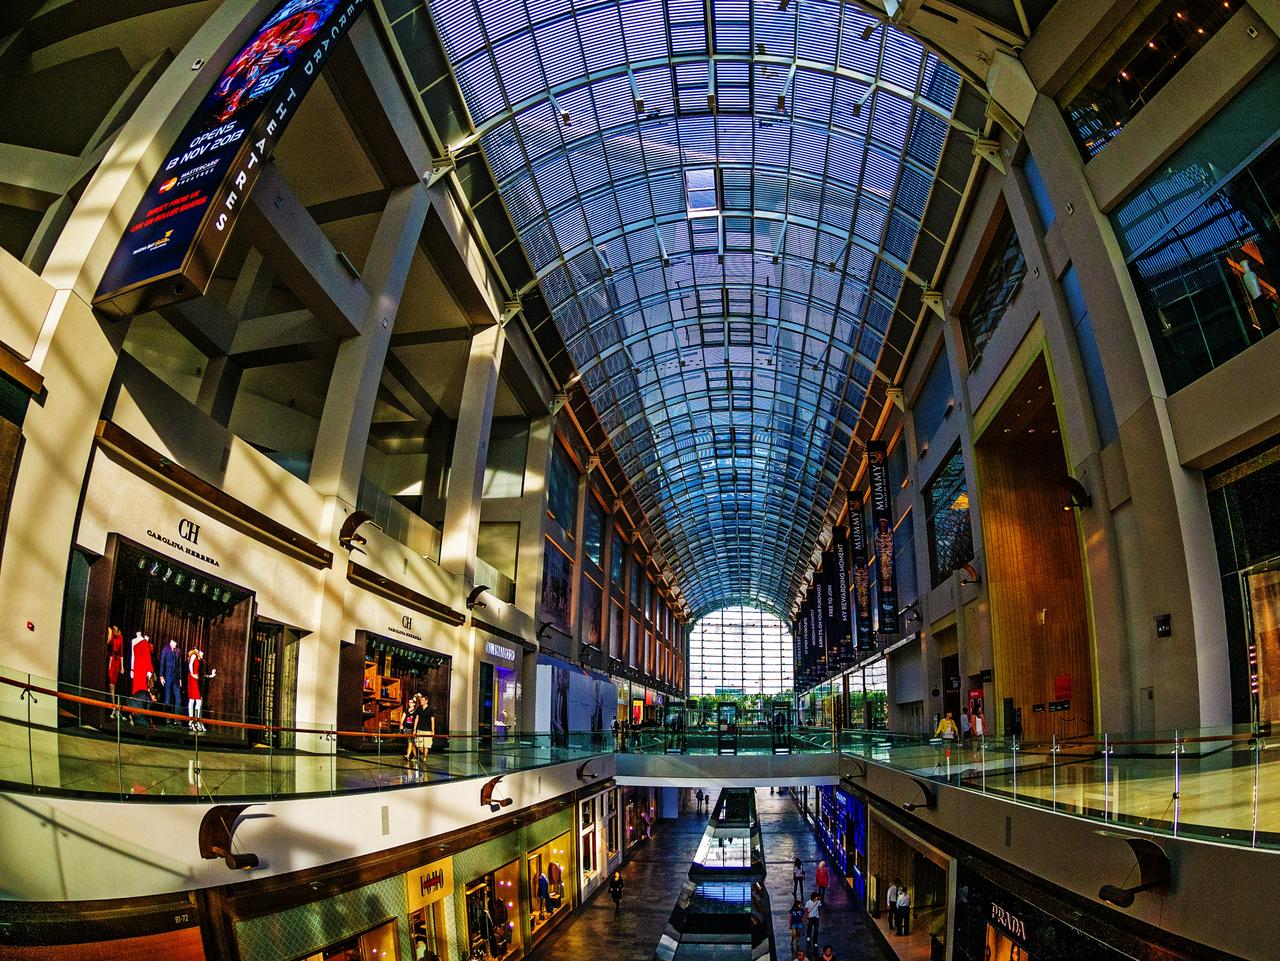 An interior general view of The Shoppes at Marina Bay Sands showing the curved ceiling and rows of shops, Singapore. FAQ, sunday escape